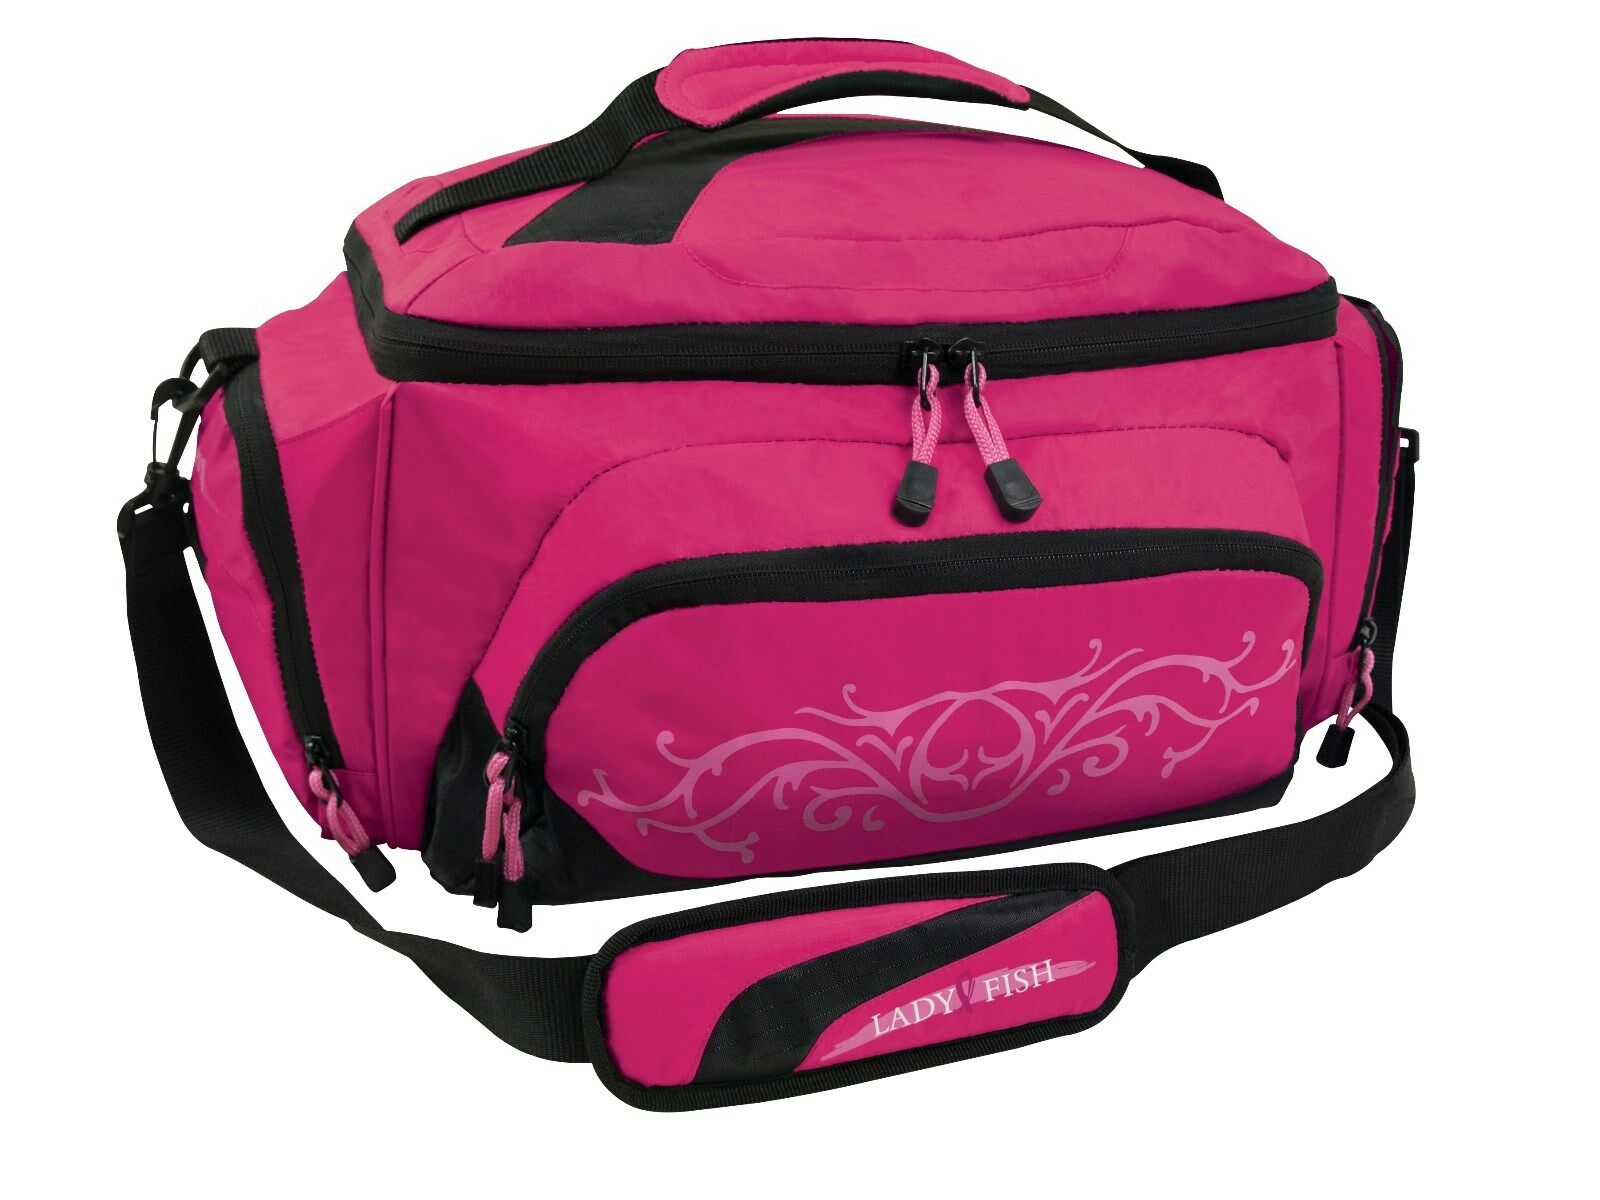 Lady fish girls women pink fishing tackle bag w out boxes for Fishing tackle bags